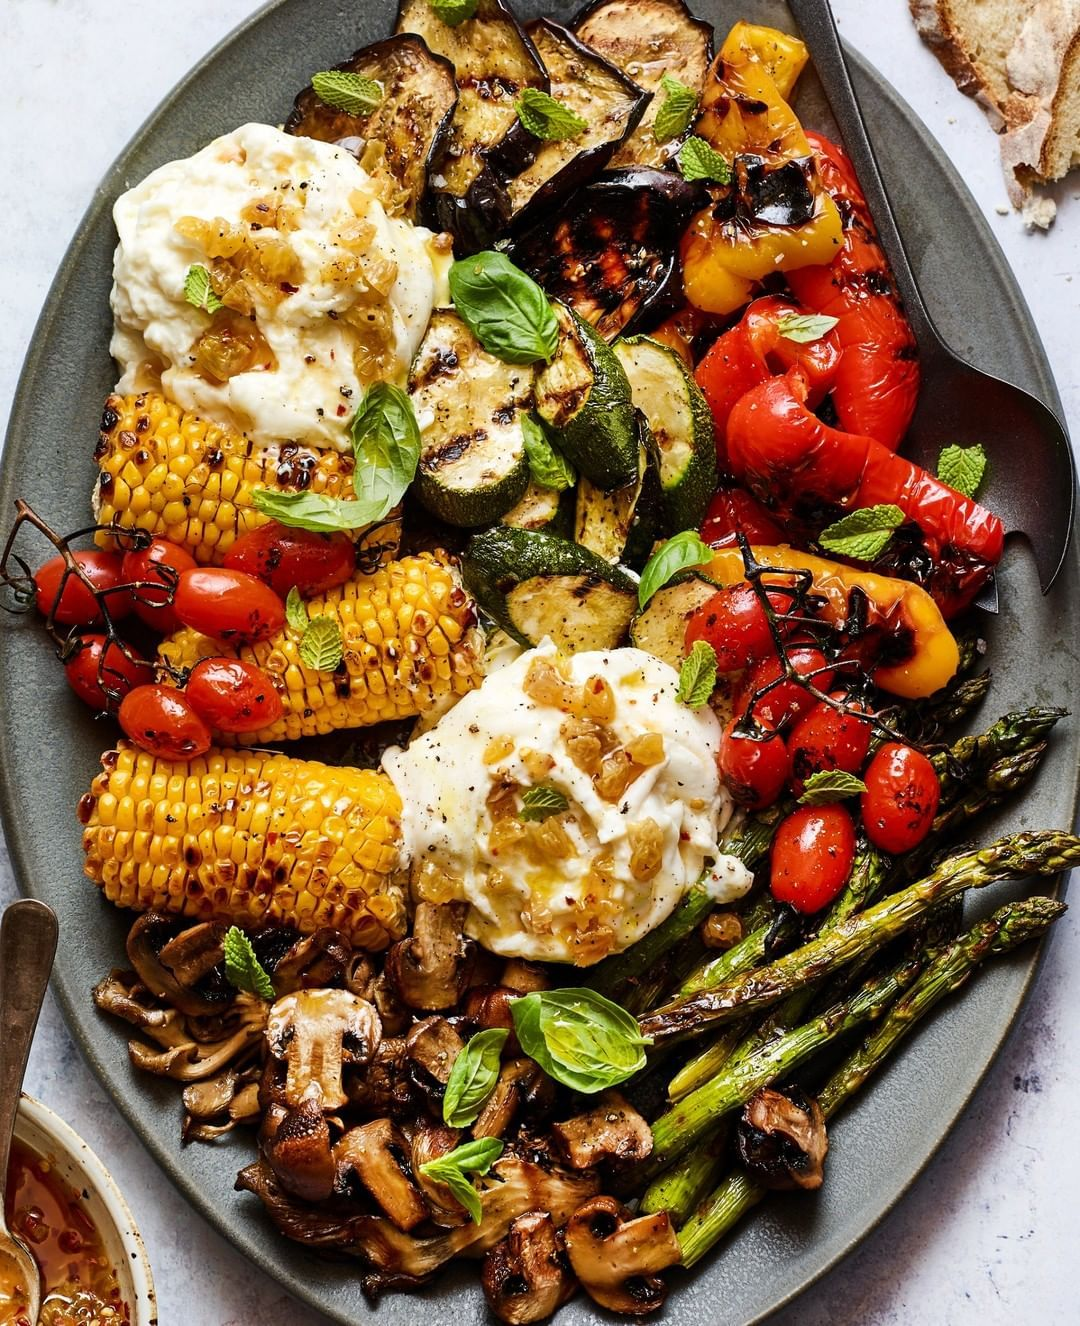 Nyt Cooking On Instagram Reminder Summer Is Still Happening That S Why Clarkbar Developed This New Re In 2020 Nyt Cooking Vegan Recipes Healthy Grilled Vegetables